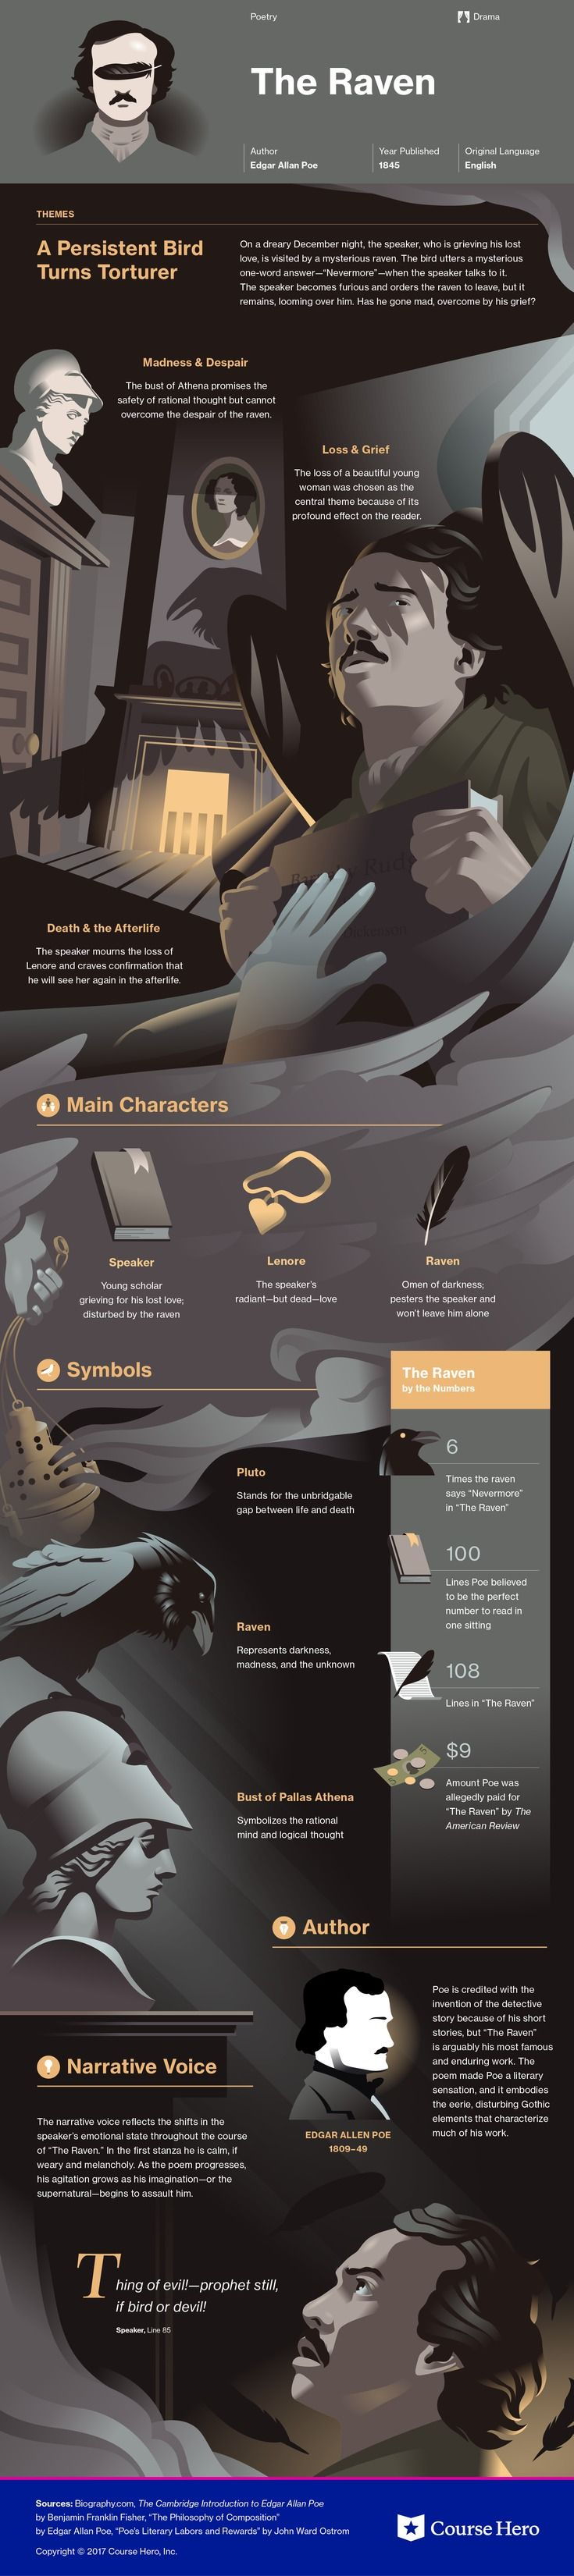 This @CourseHero infographic on The Raven is both visually stunning and informative!